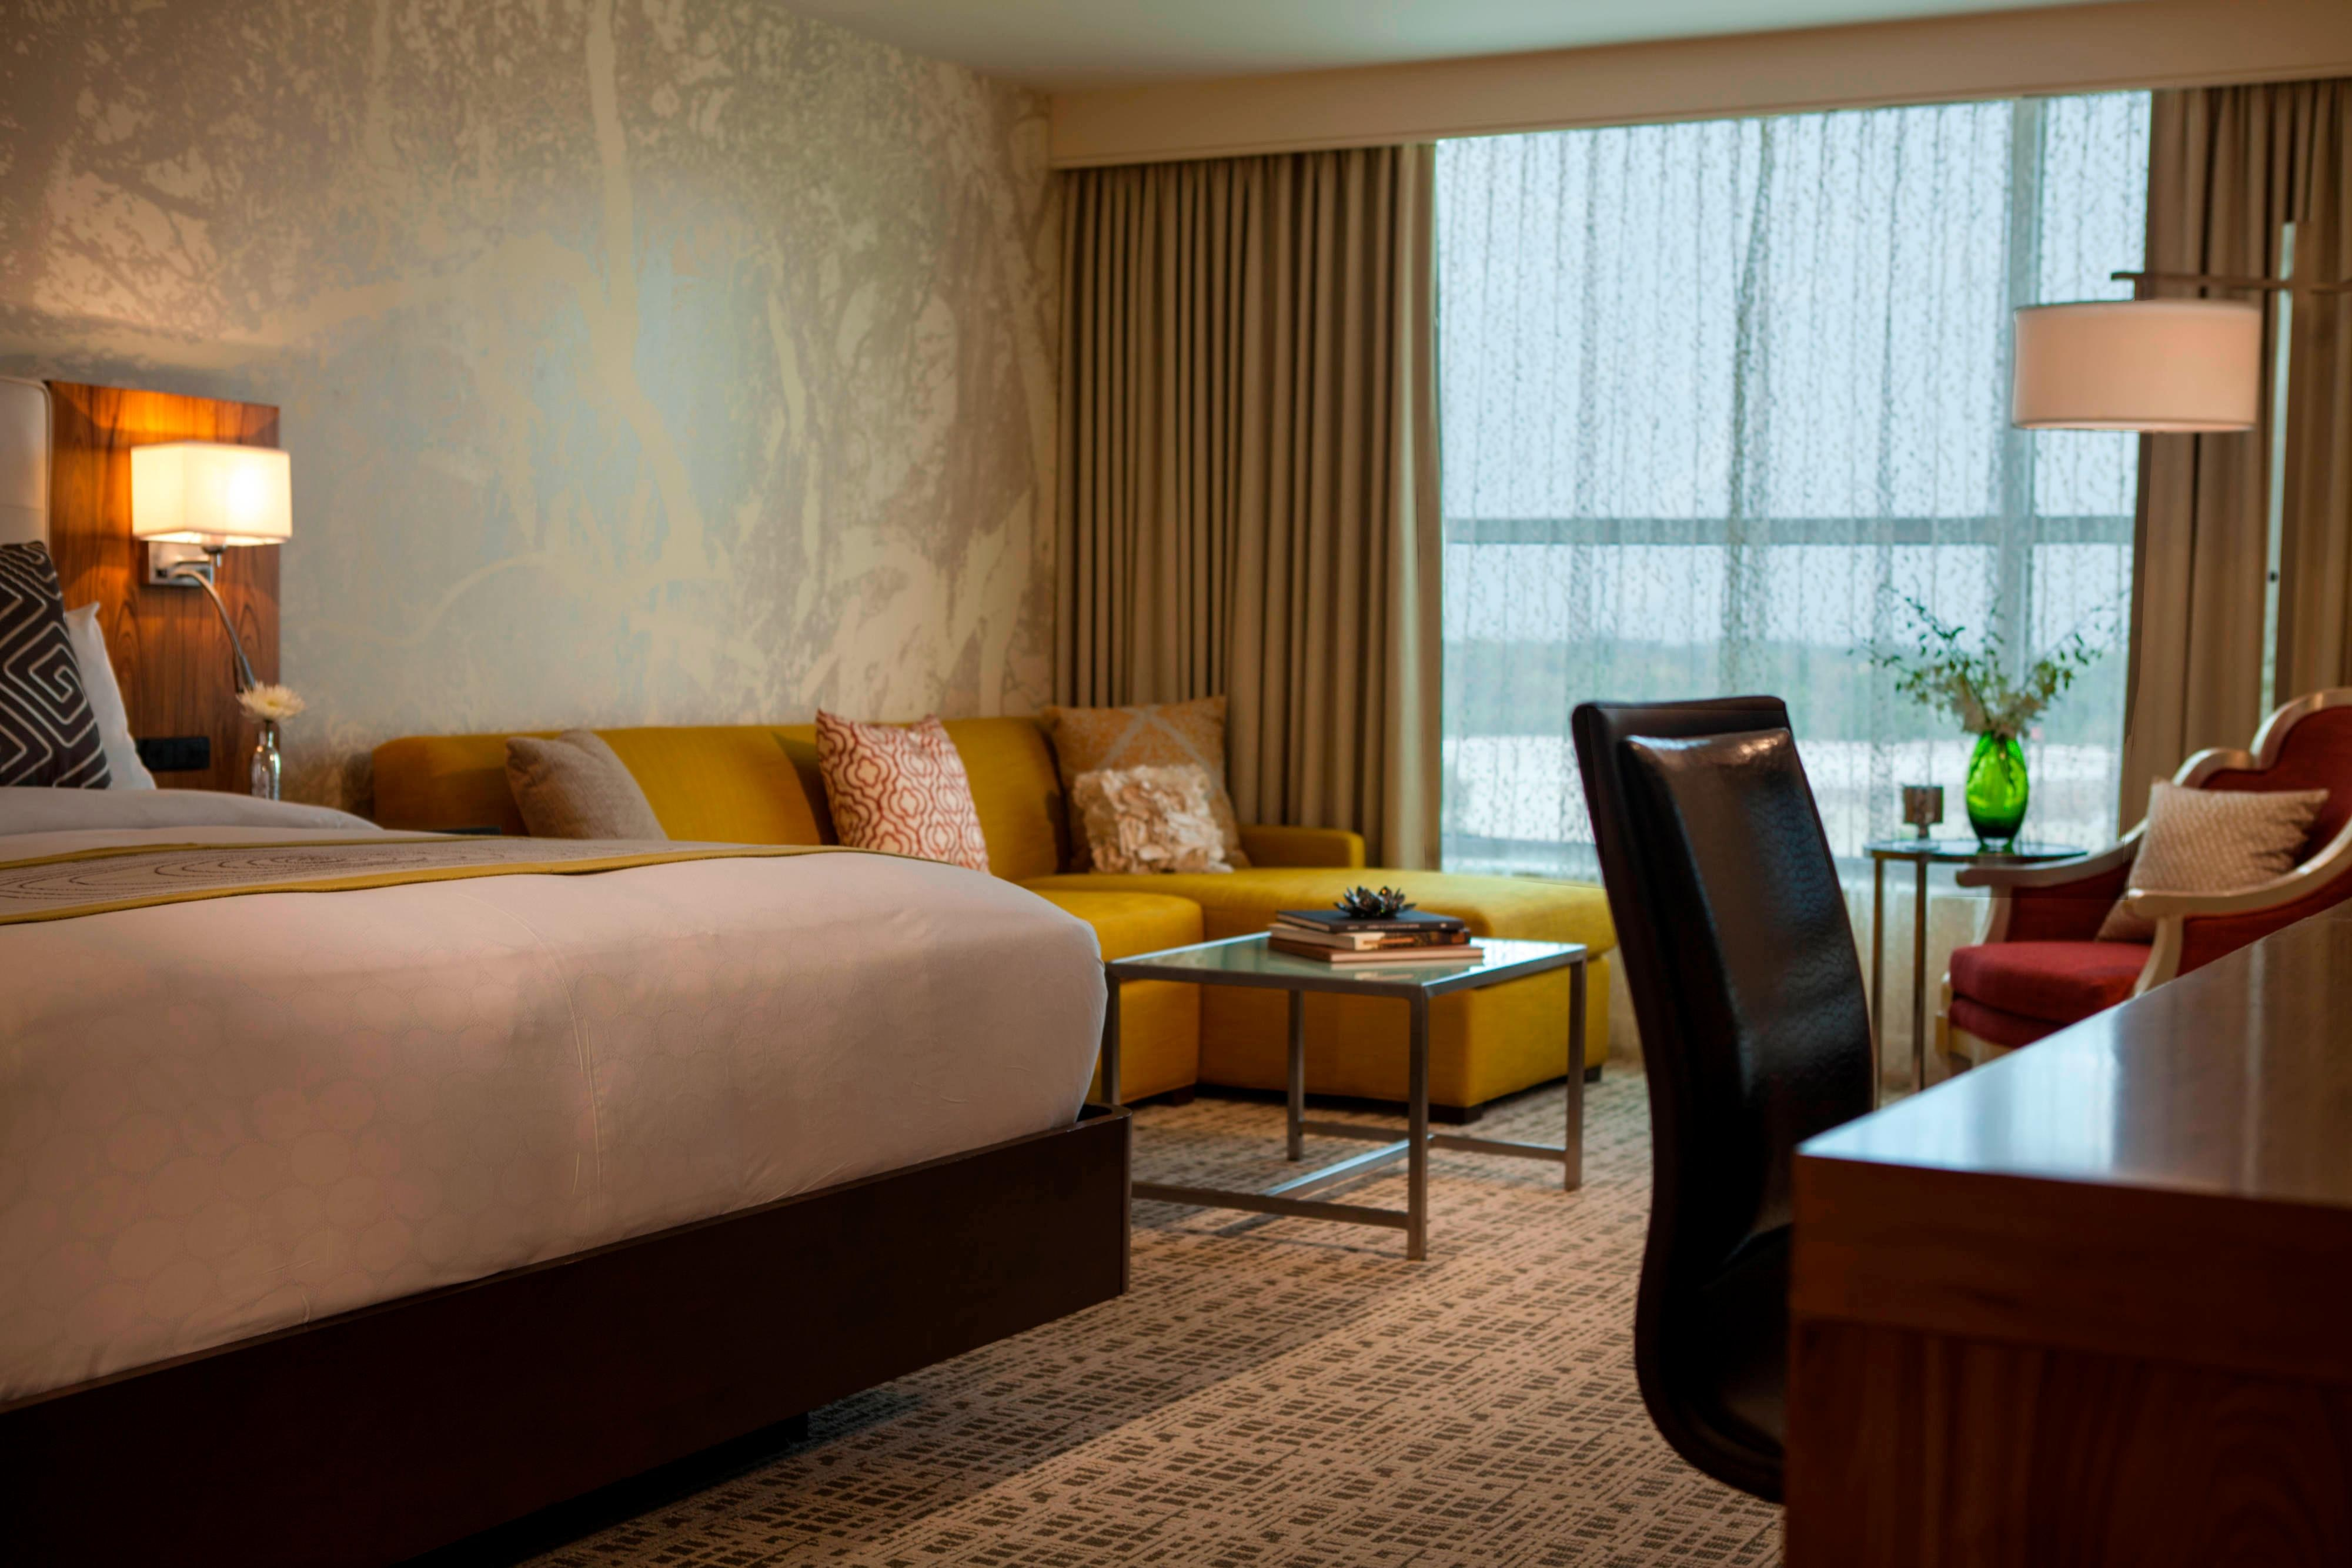 Rooms and Hotel Suites in Baton Rouge, Louisiana